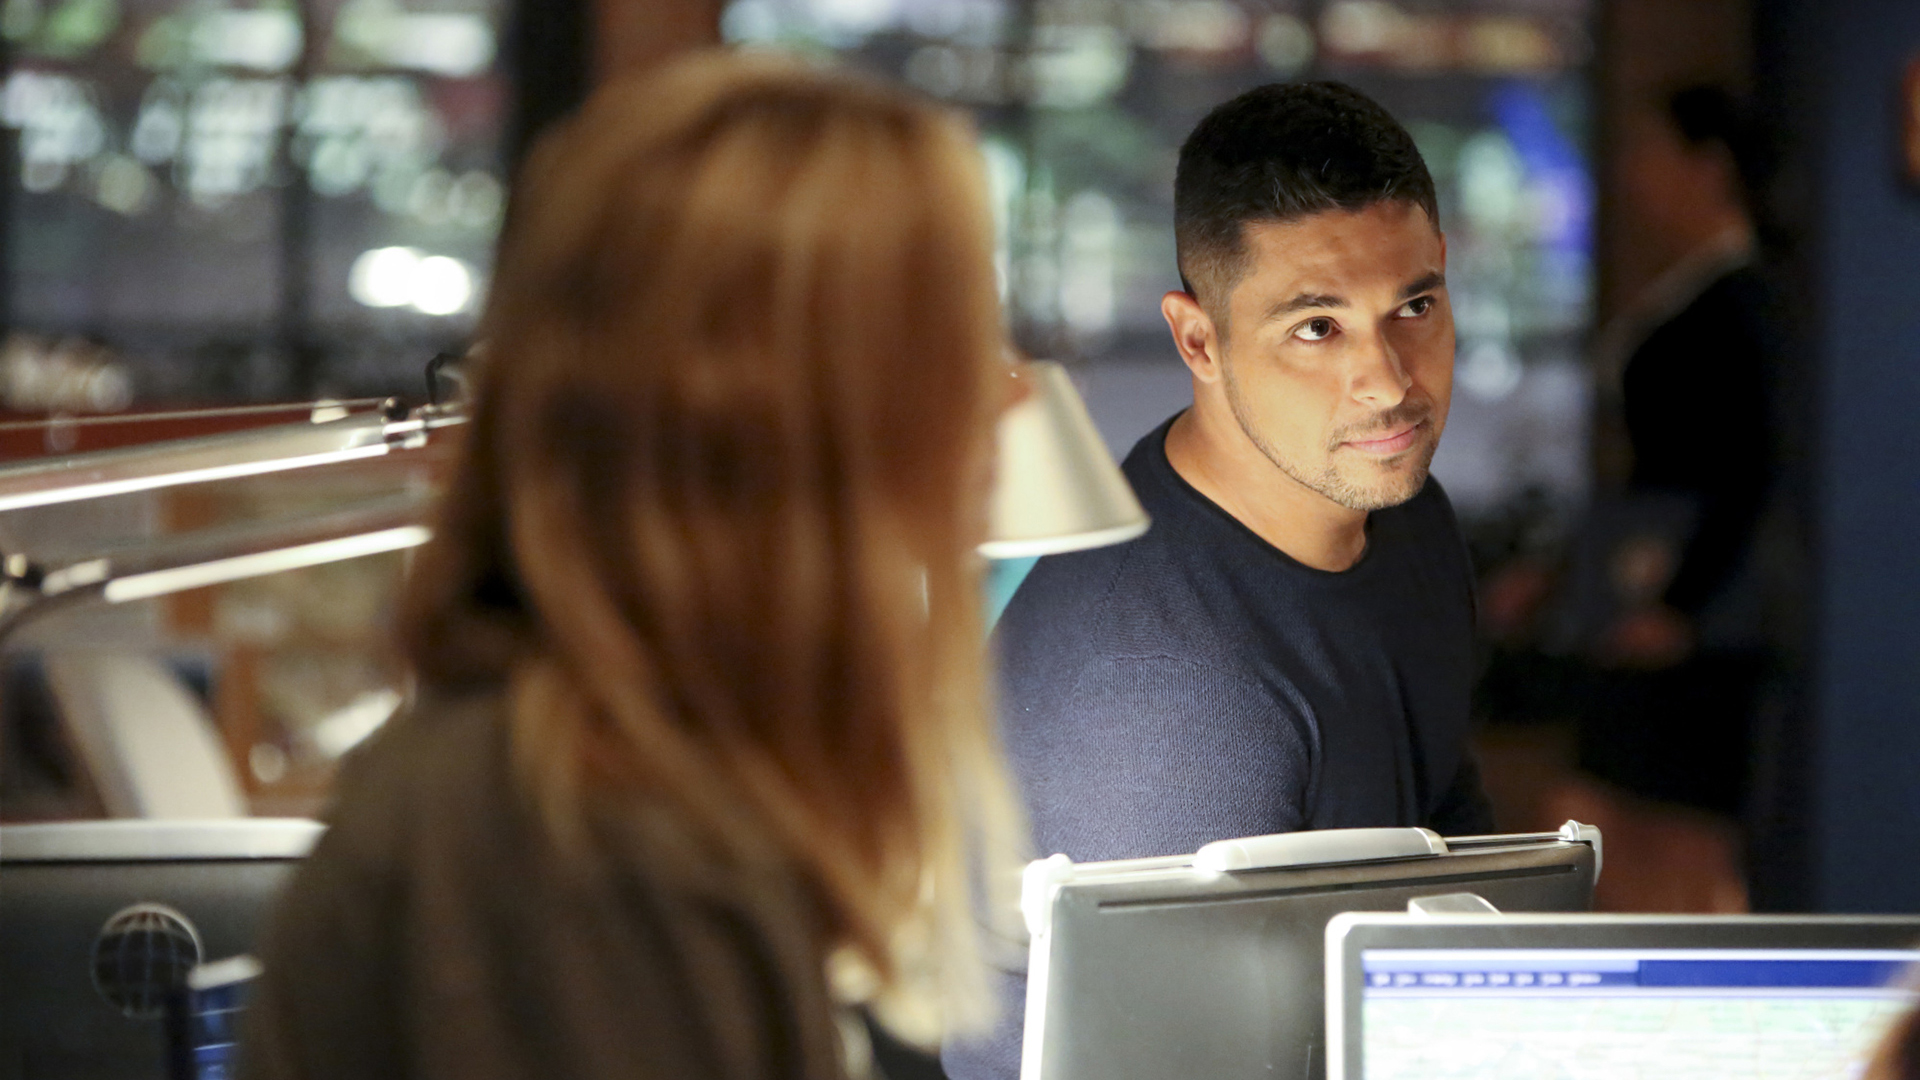 Torres seems right at home in the NCIS squad room.